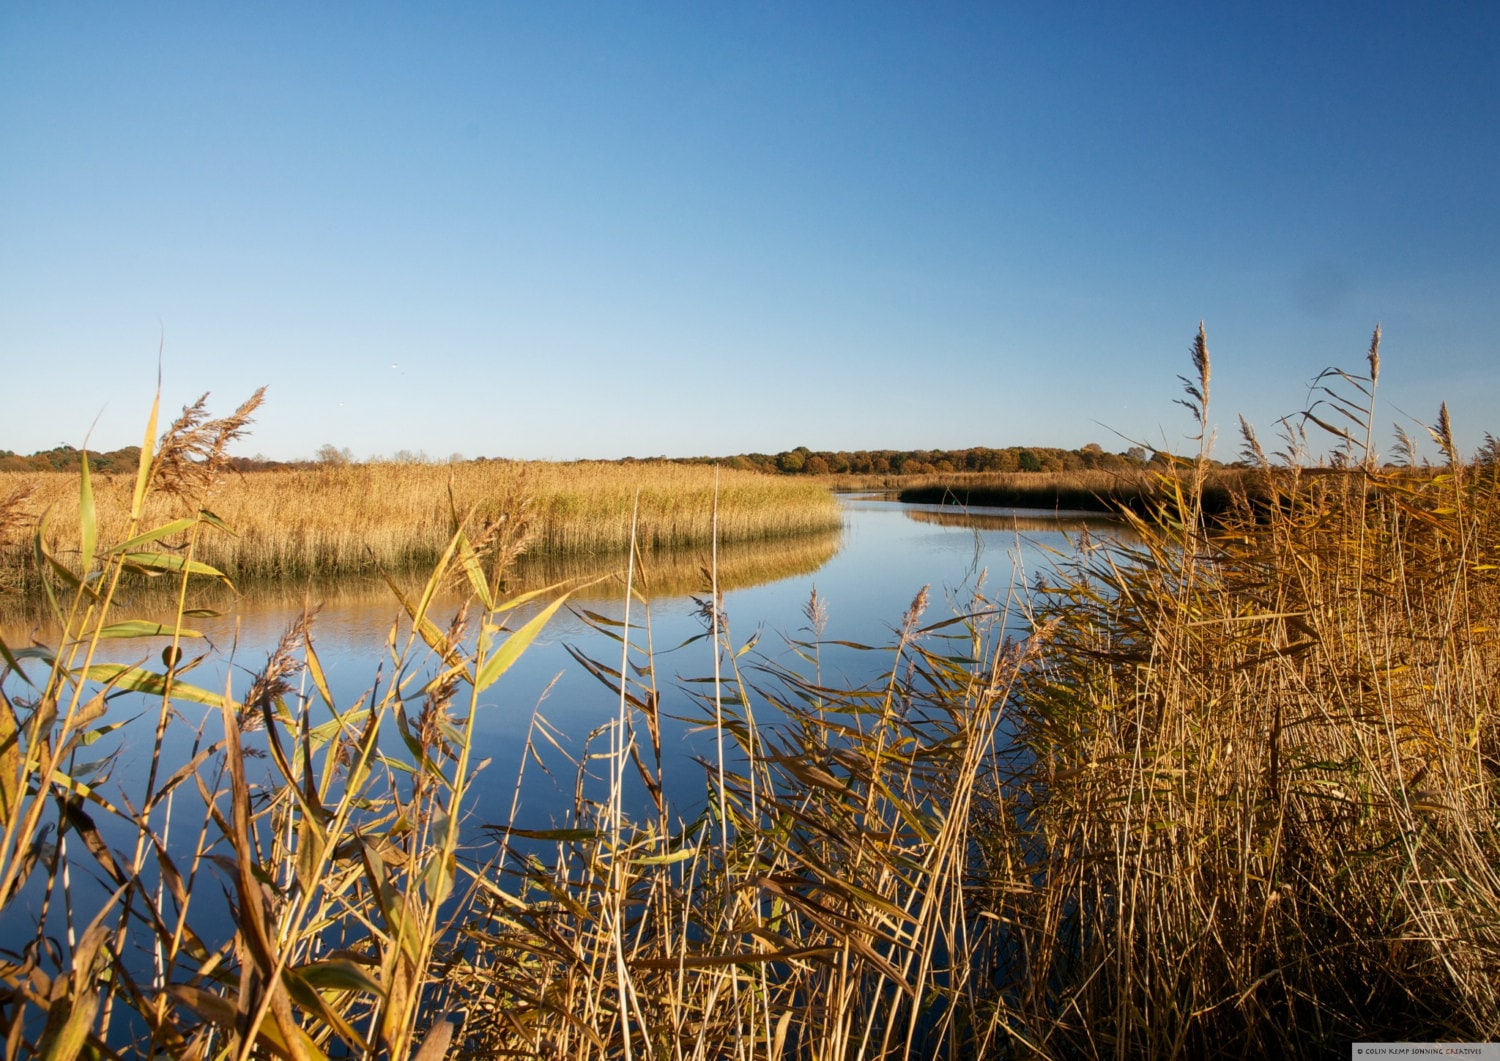 Riverside landscape, fine art Photographic print, reed beds and big sky,  Snape Maltings, Suffolk 18x12 inch unmounted